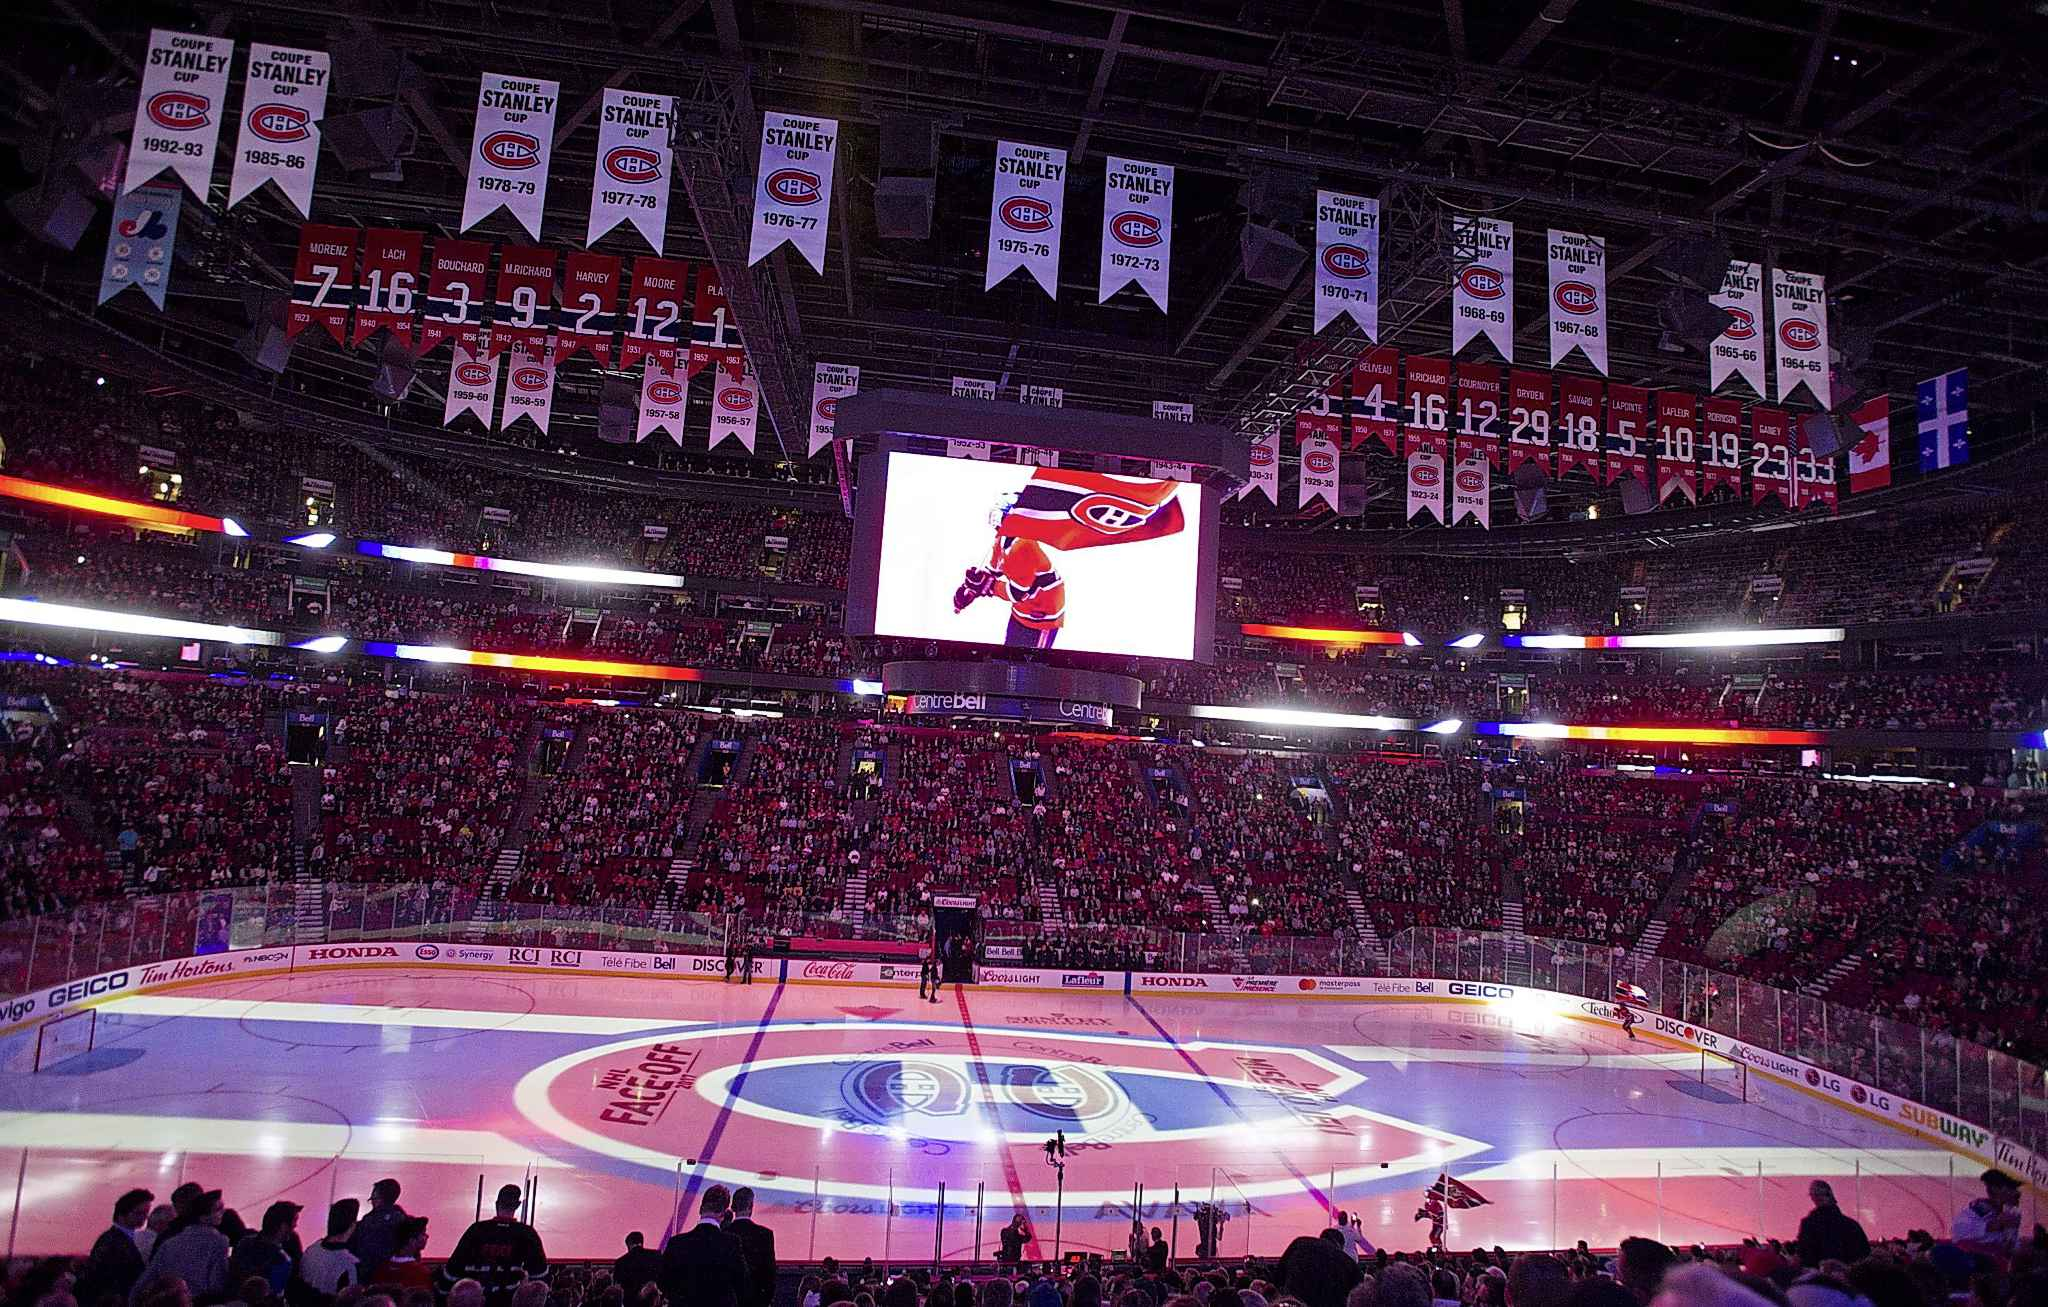 The Montreal Canadiens logo is projected onto the ice at the Bell Centre during a pre-game ceremony in Montreal in 2017. The Jets will be adding on-ice projection to their game-night experience, which has become a staple at most NHL rinks.